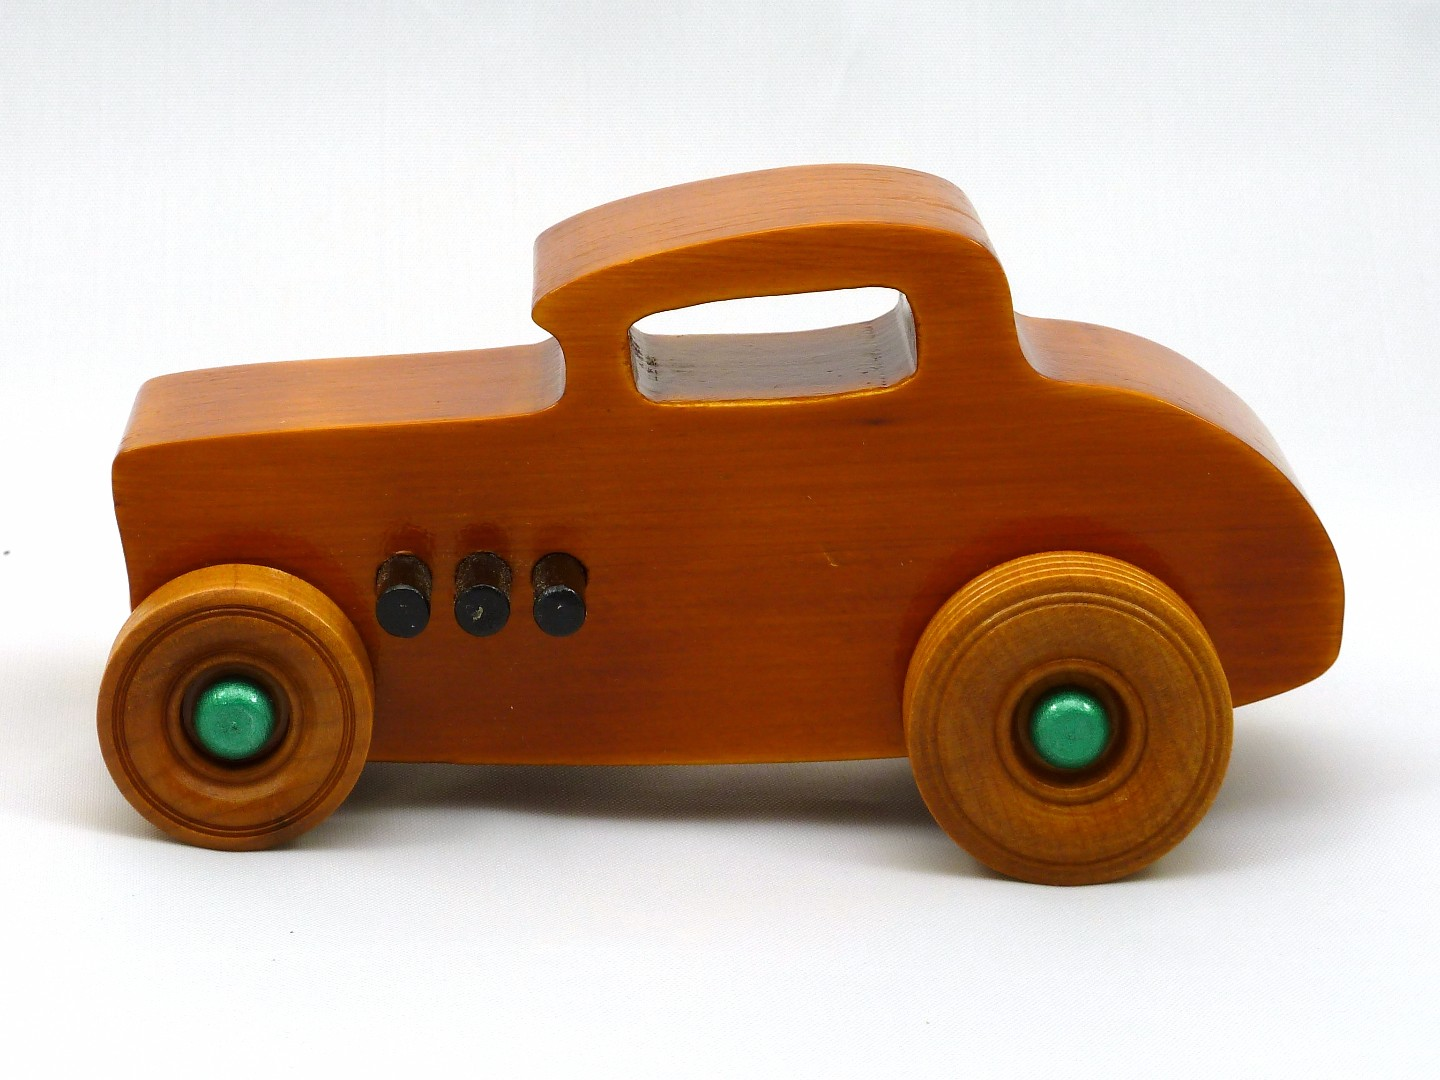 20170902-134207 Wooden Toy Car - Hot Rod Freaky Ford - 32 Deuce Coupe - Pine - Amber Shellac - Metallic Green.jpg